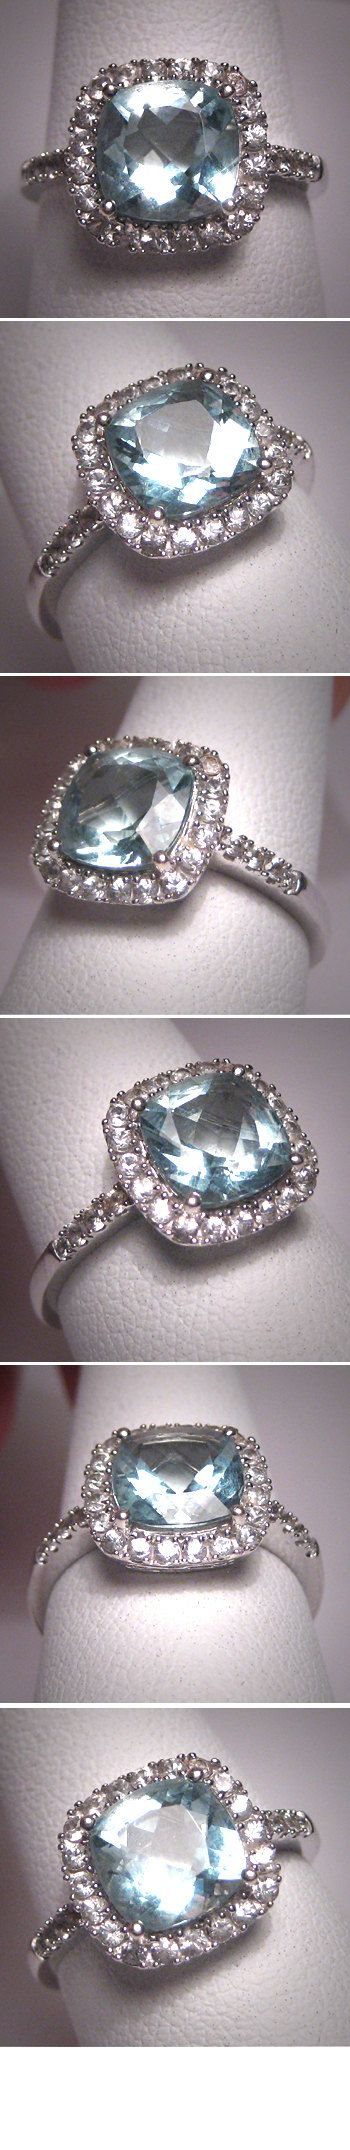 Vintage Aquamarine Wedding Ring